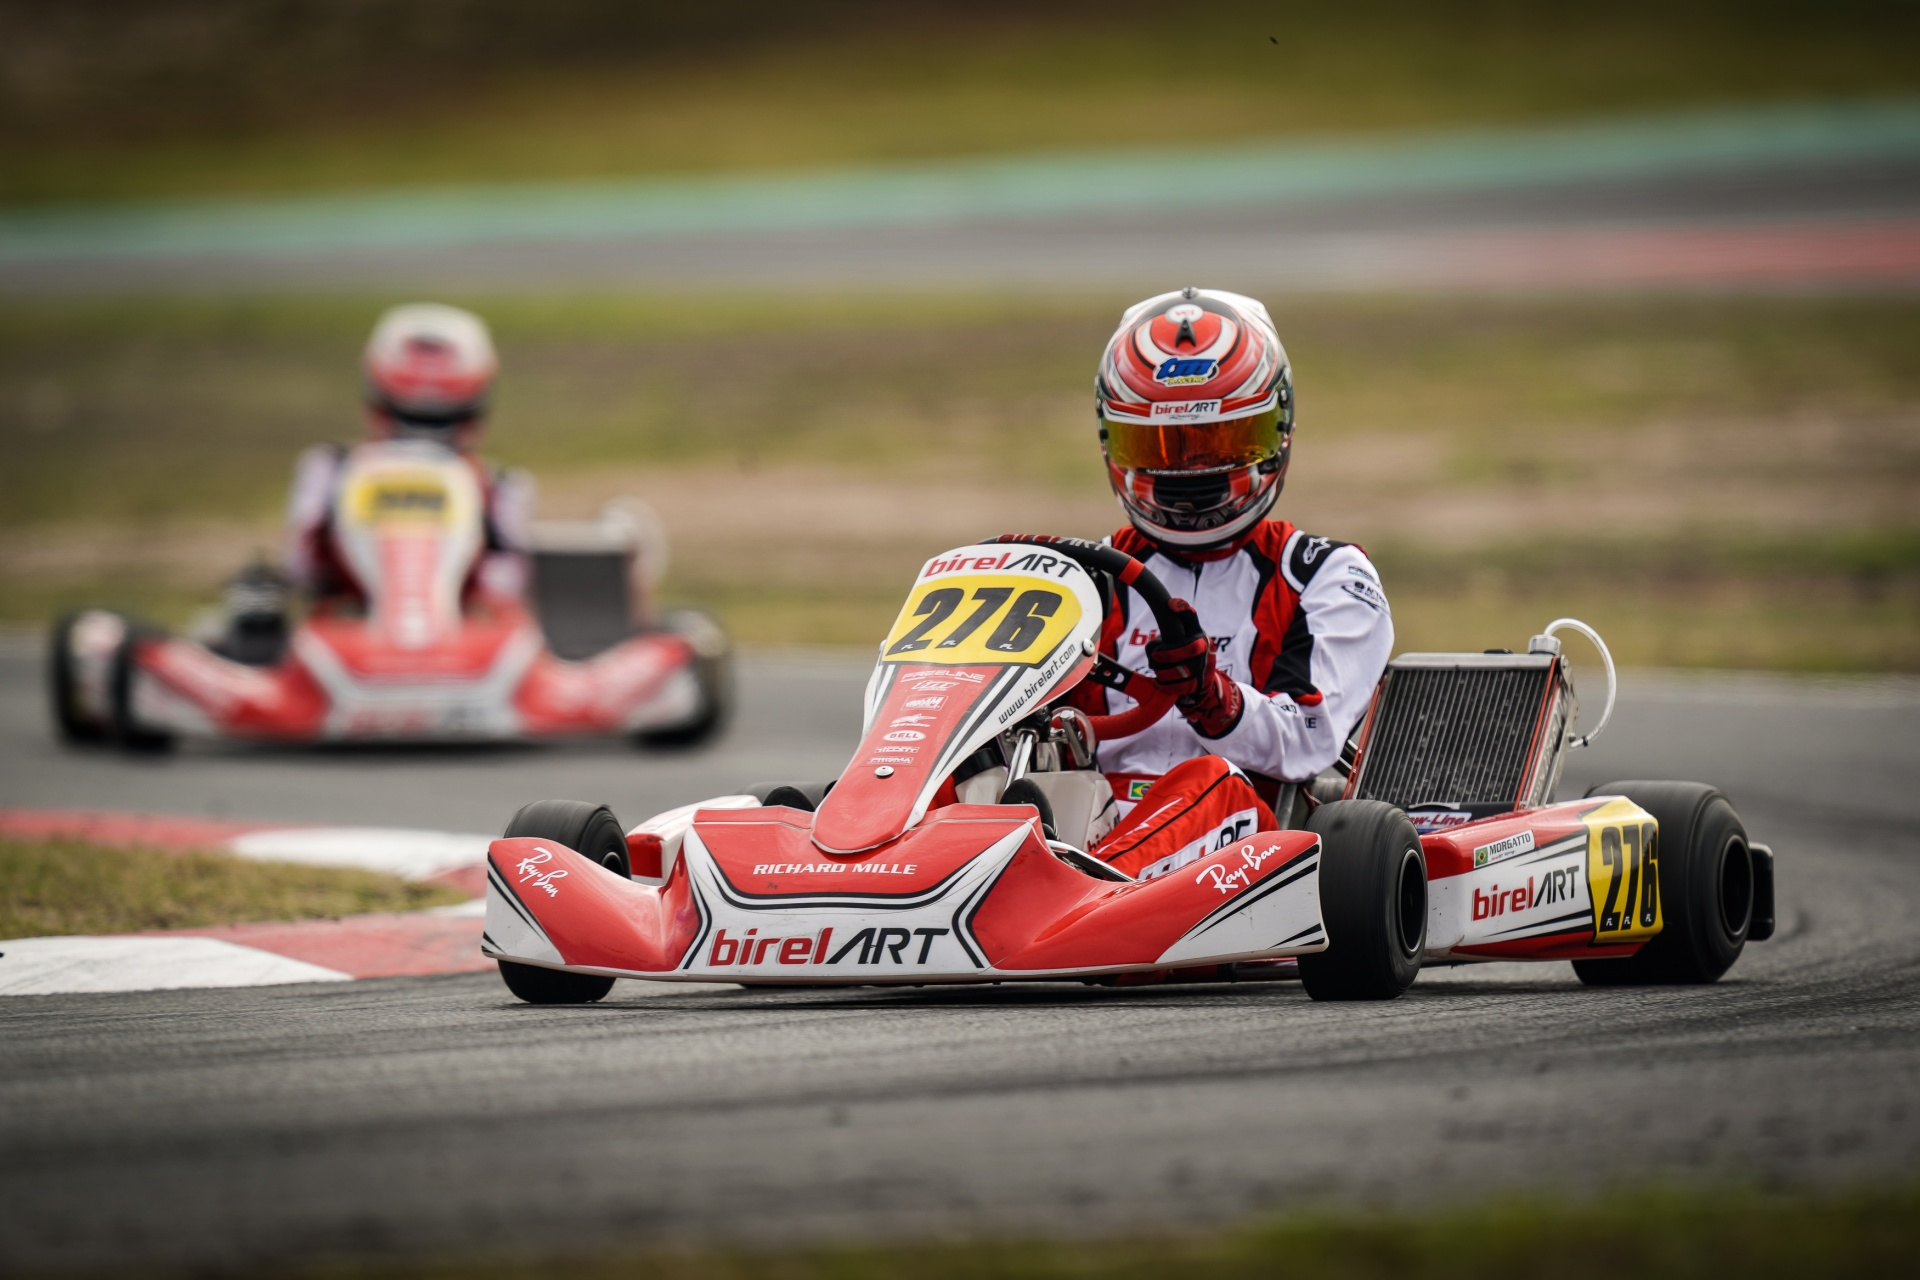 The Champions of the Future from Birel ART ready for the World Championship